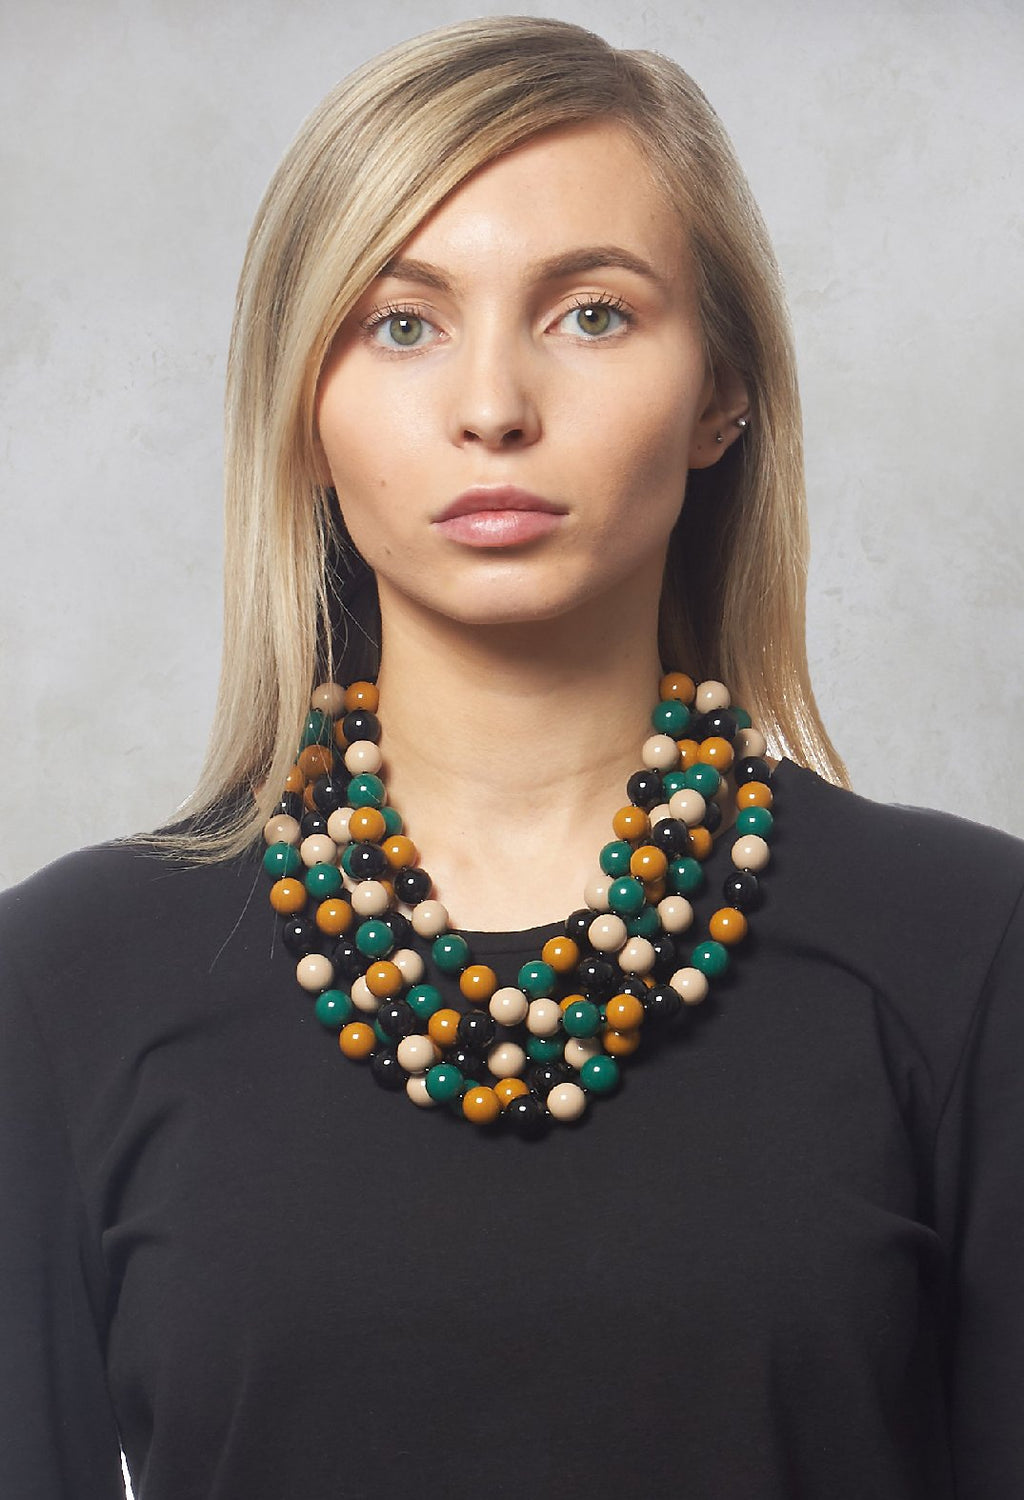 5 Stand Balls Necklace in Black / Mustard / Green / Beige